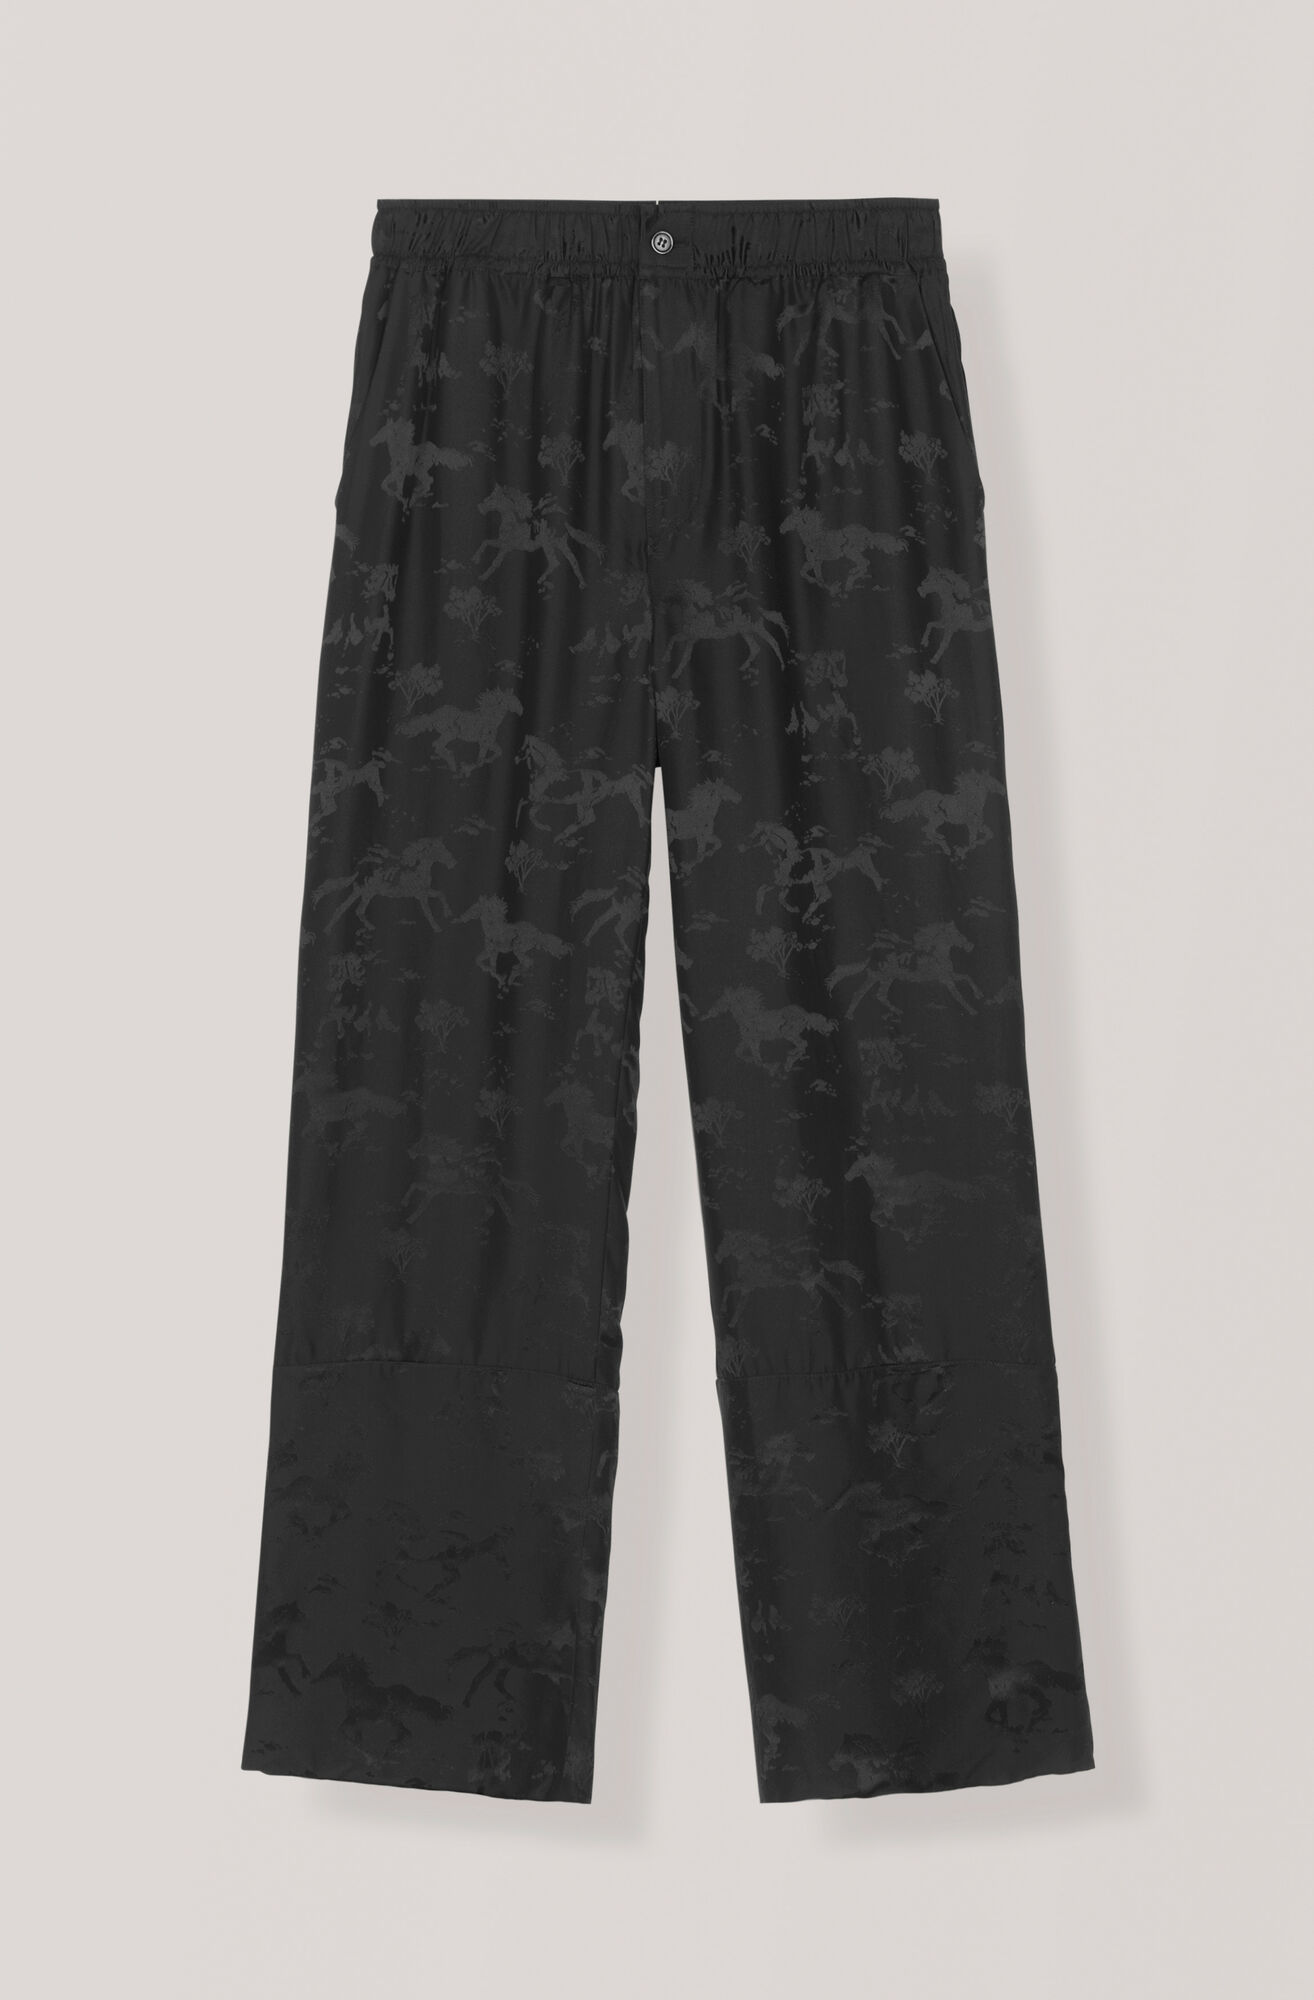 Silk Jacquard Pants, Black, hi-res